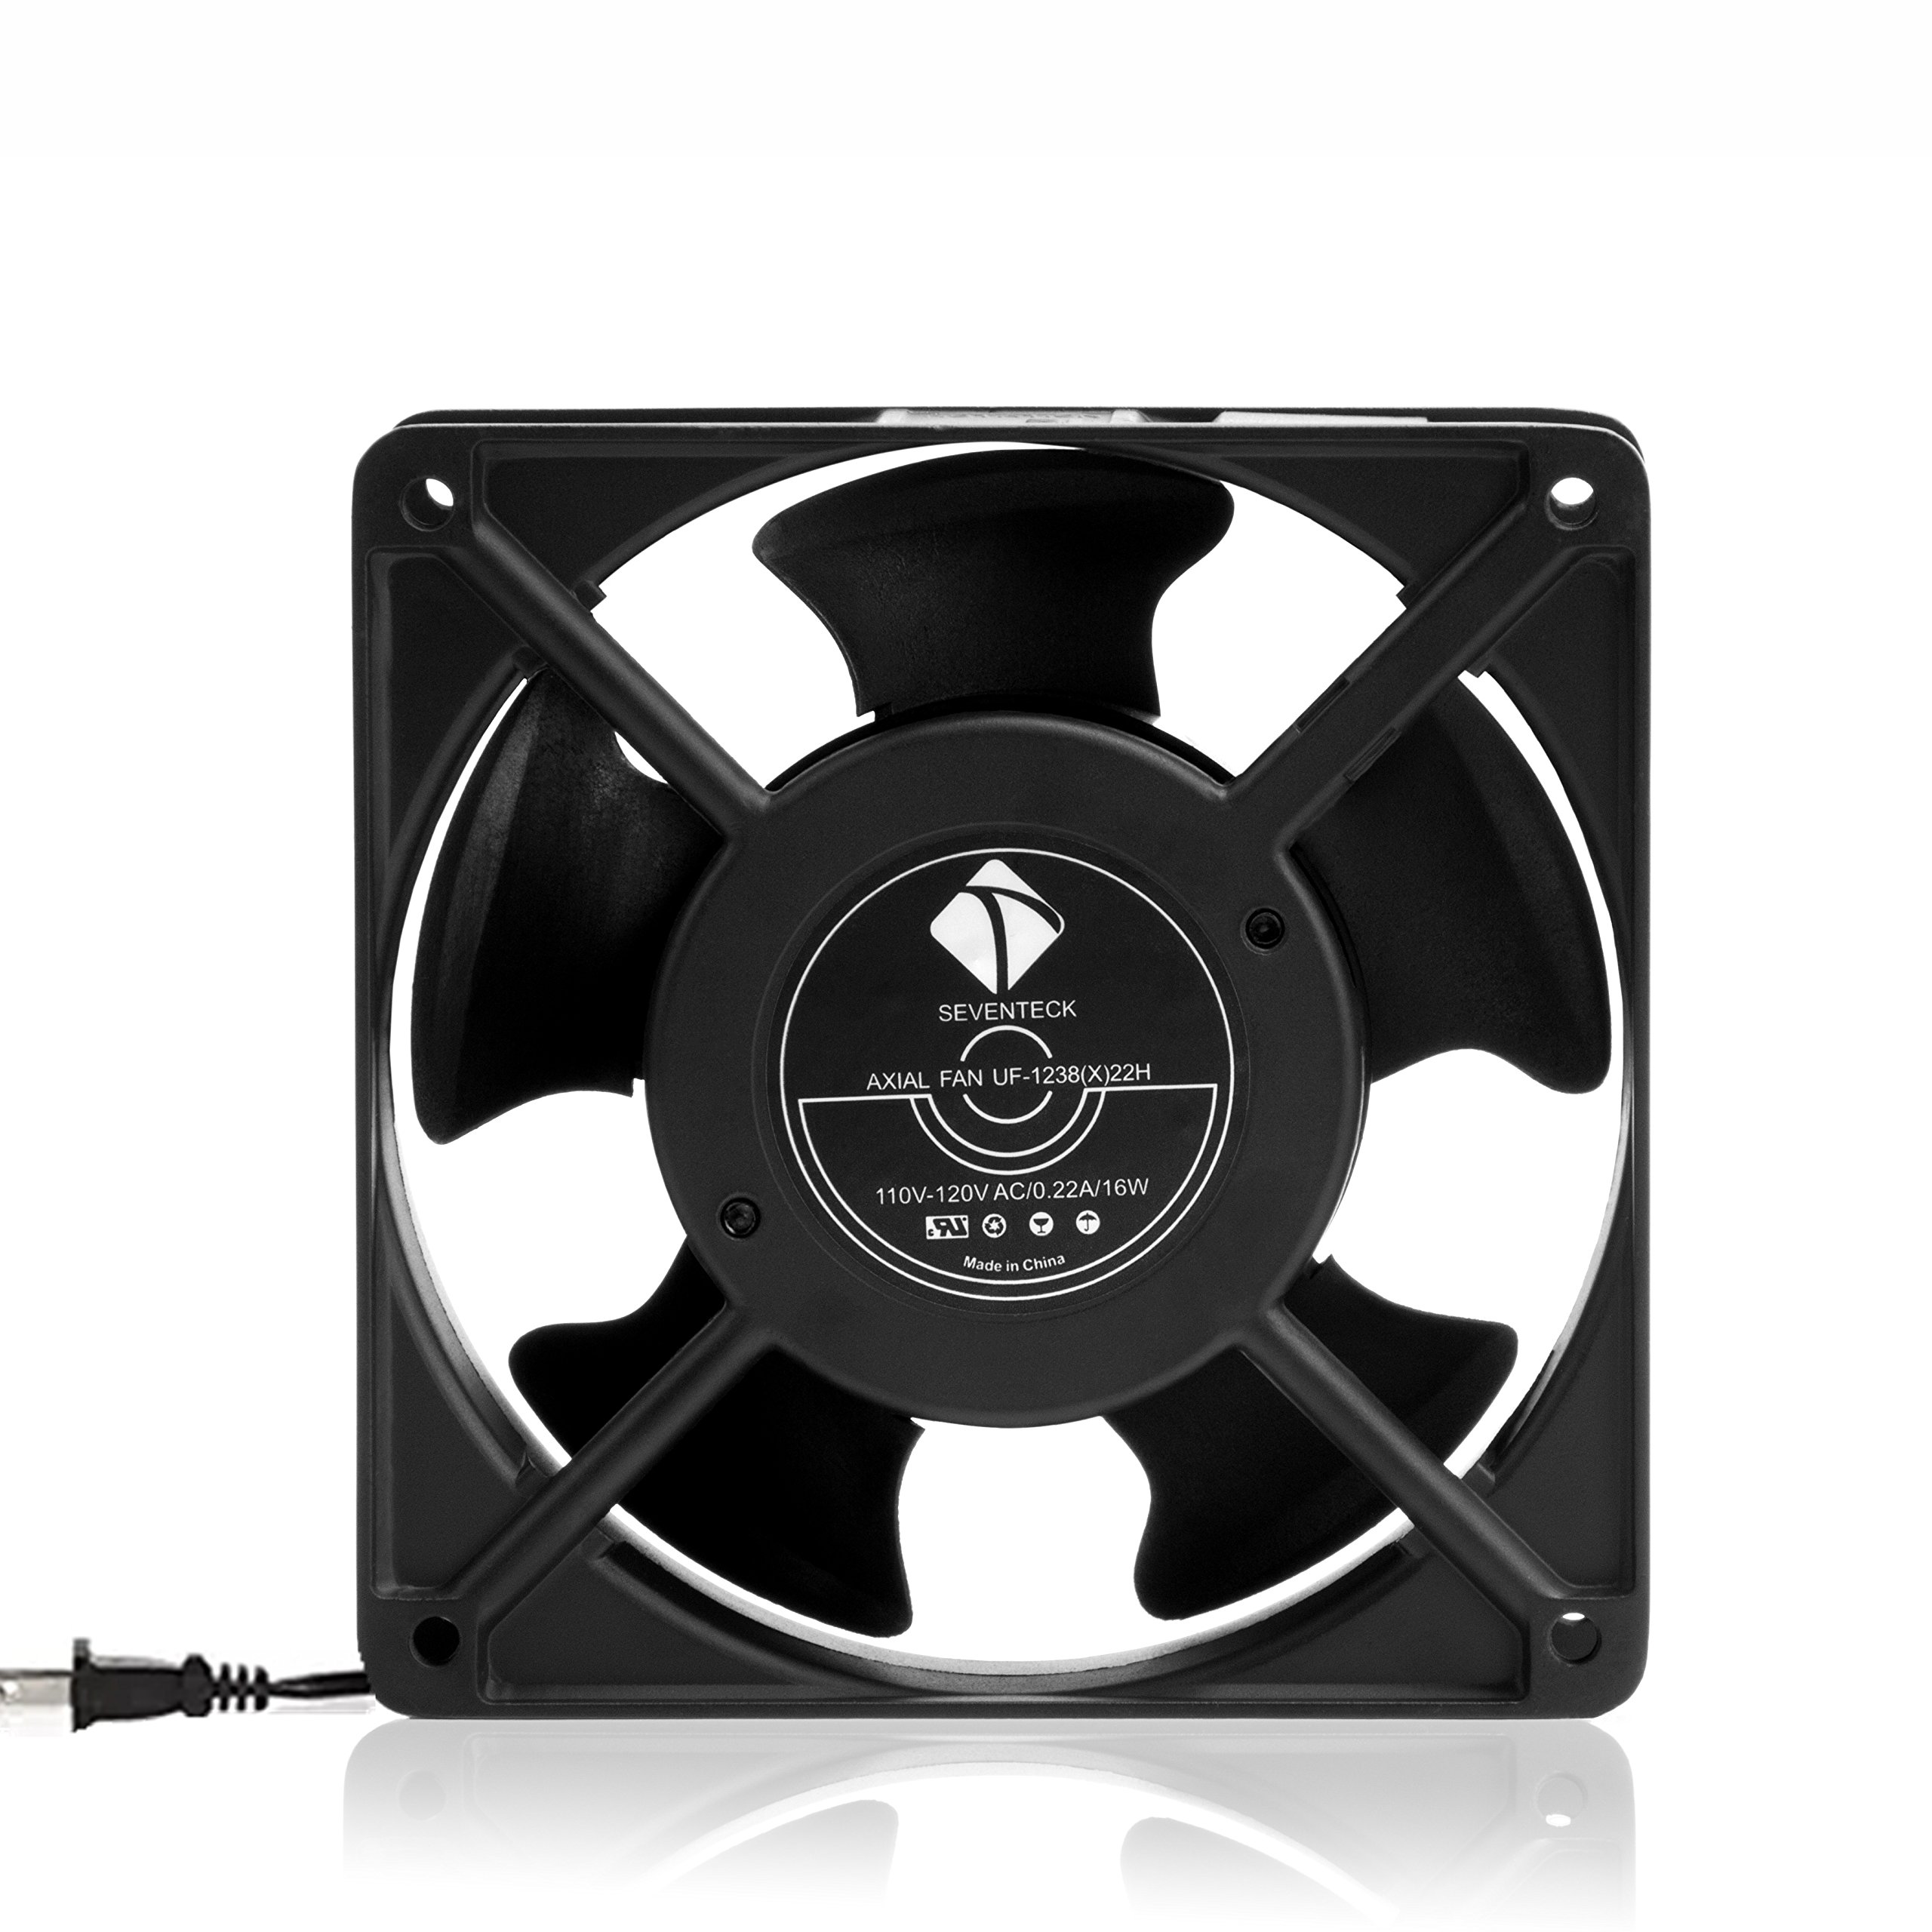 1238 Axial Fan AC 110V Cooling Fan,Muffin Fan Two Guards 4-Feet Power Cord DIY Cooling Ventilation Exhaust Projects